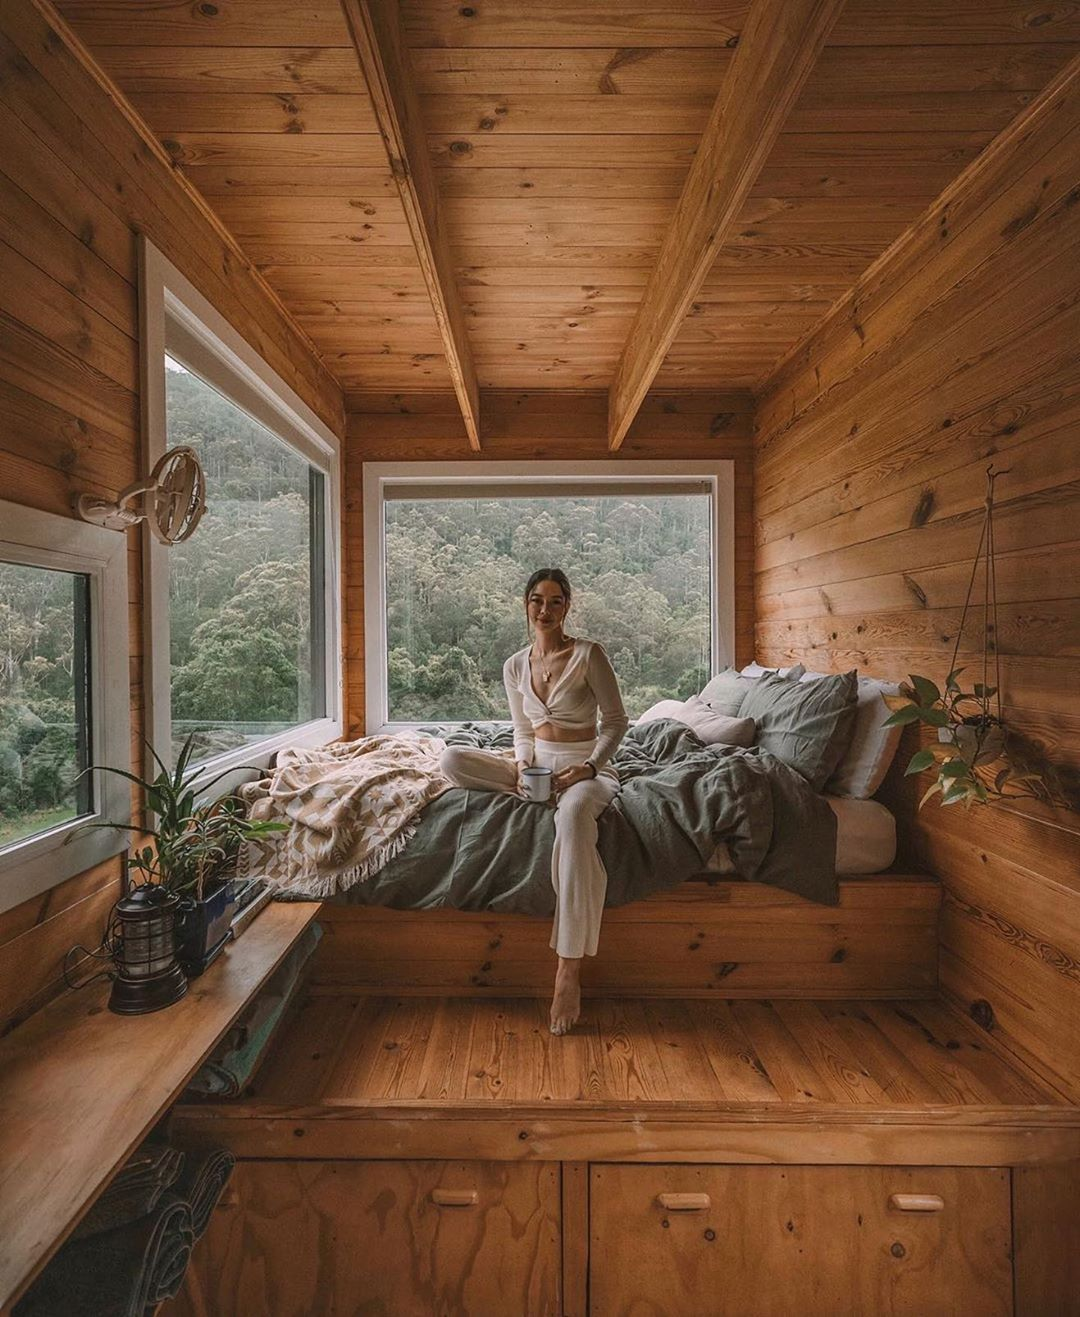 Cabin Diaries On Instagram Let S Spend The Weekend Here And Shut Off From The World Photo By Taramilktea Shar Tiny House Design Dream Rooms House Design